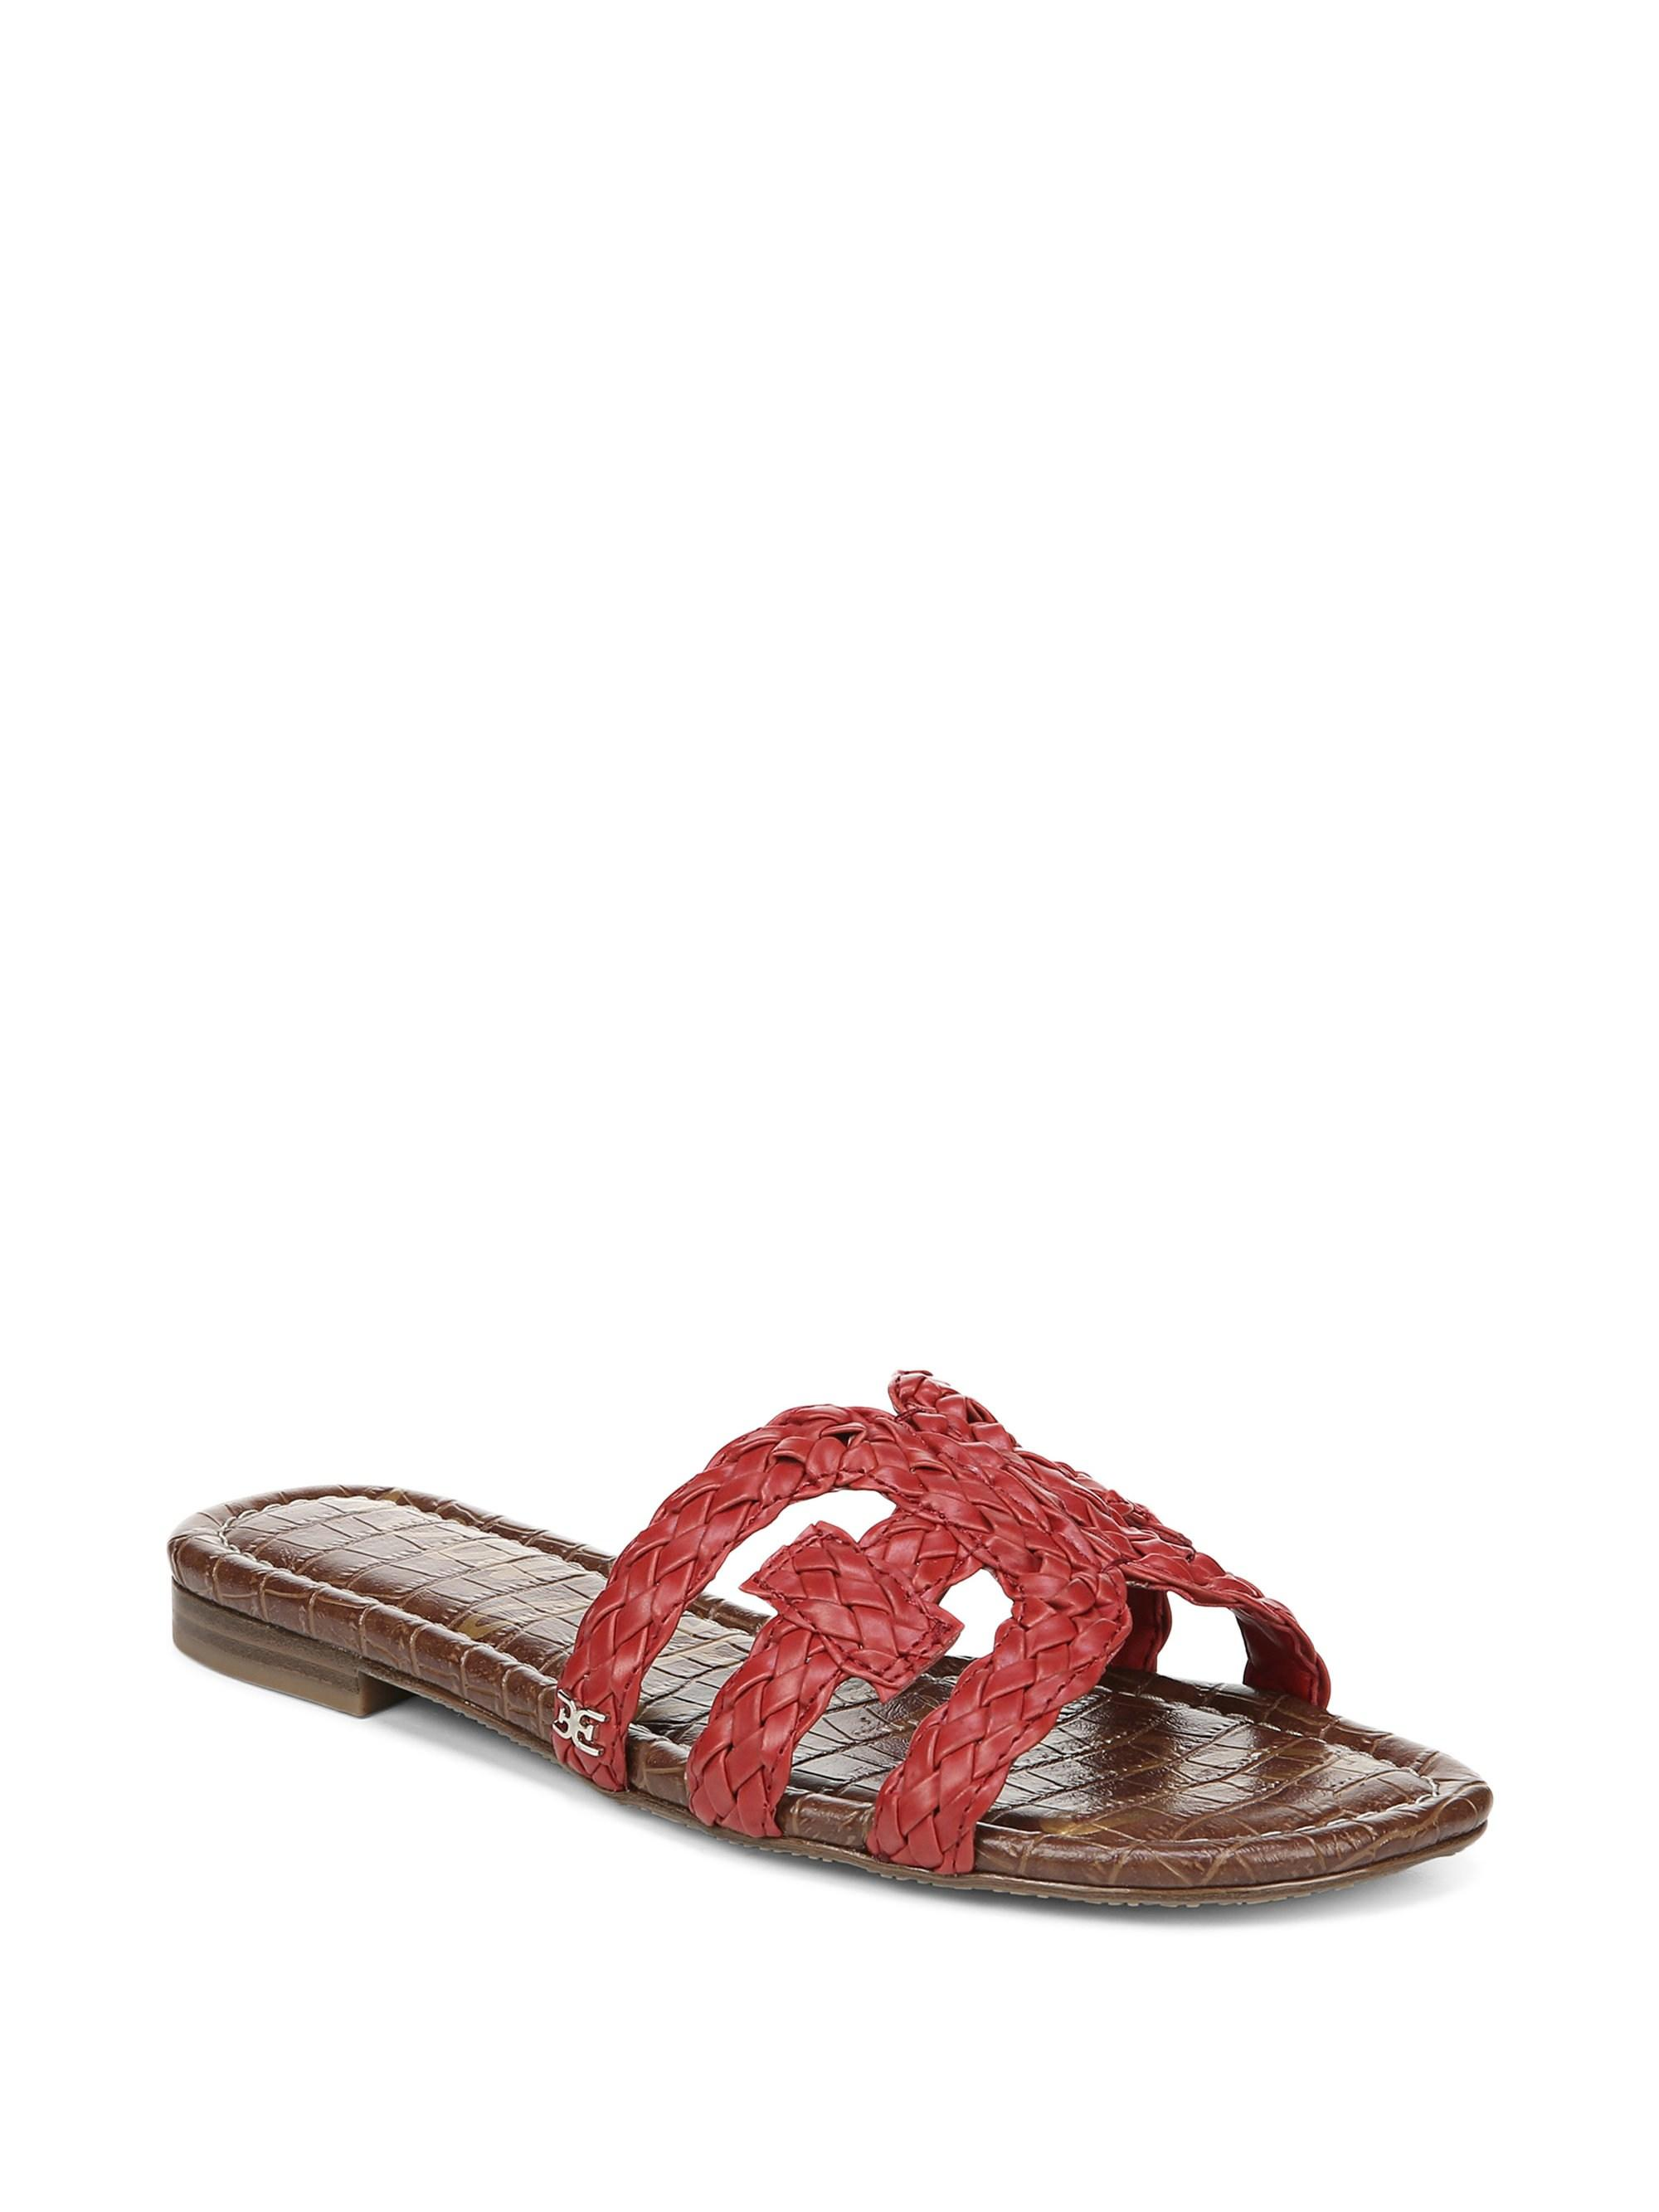 c80f75ecbc3174 Lyst - Sam Edelman Beckie Woven Leather Sandals in Red